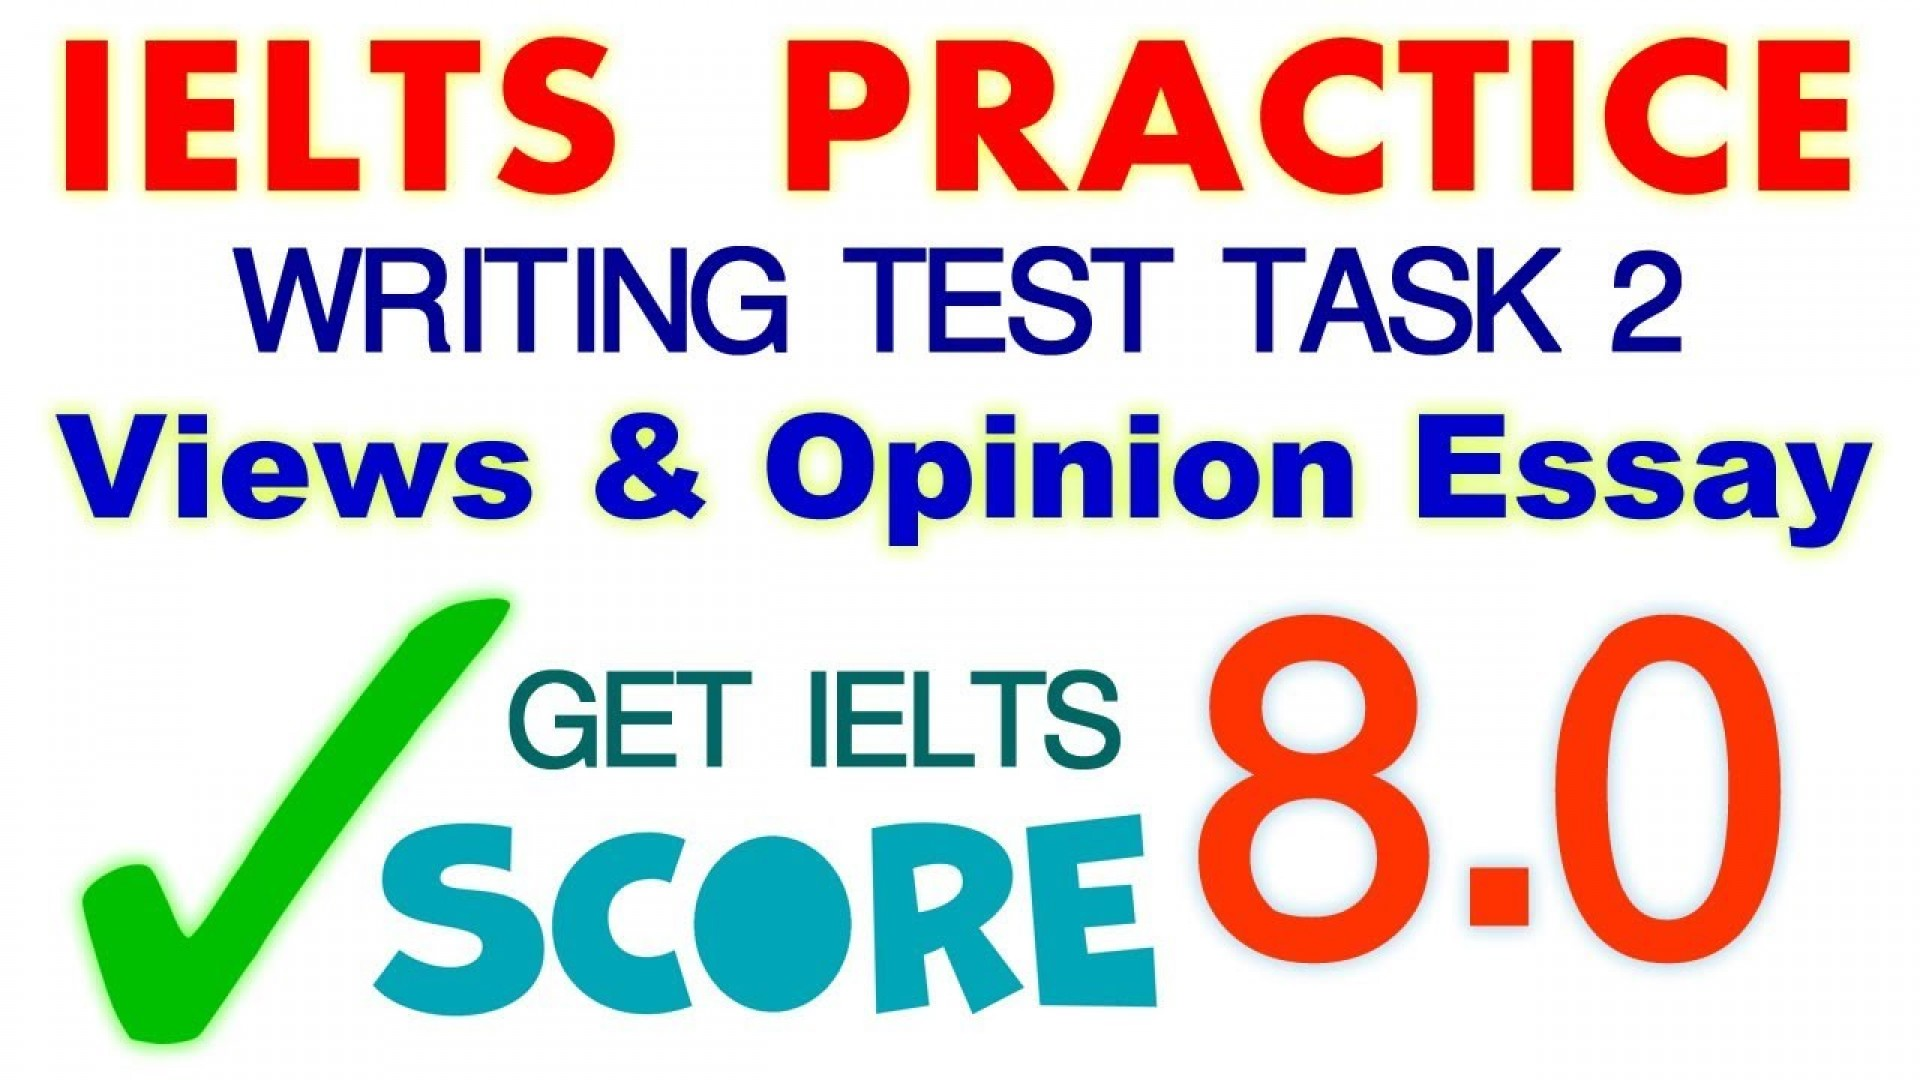 007 Essay Practice Practicing Writing Essays On The Best